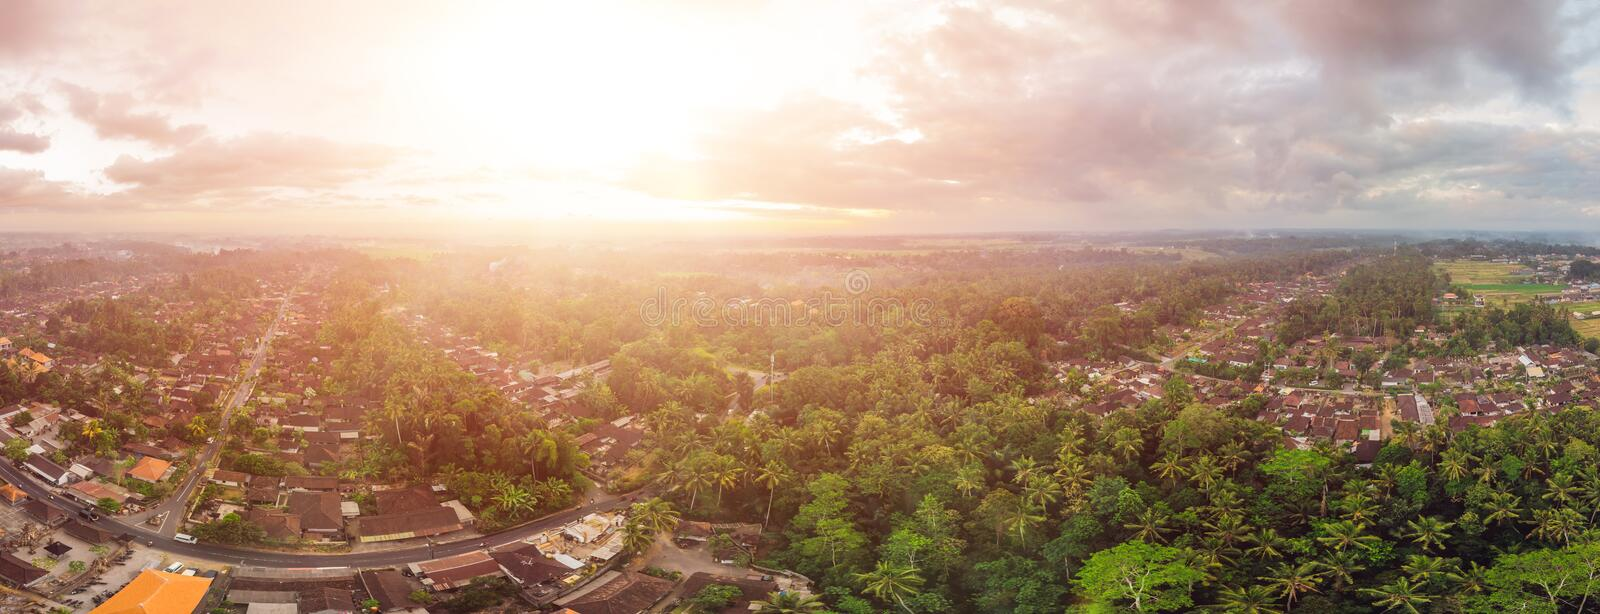 Houses and rice terraces seen from above with a drone in Ubud, Bali, Indonesia stock photo